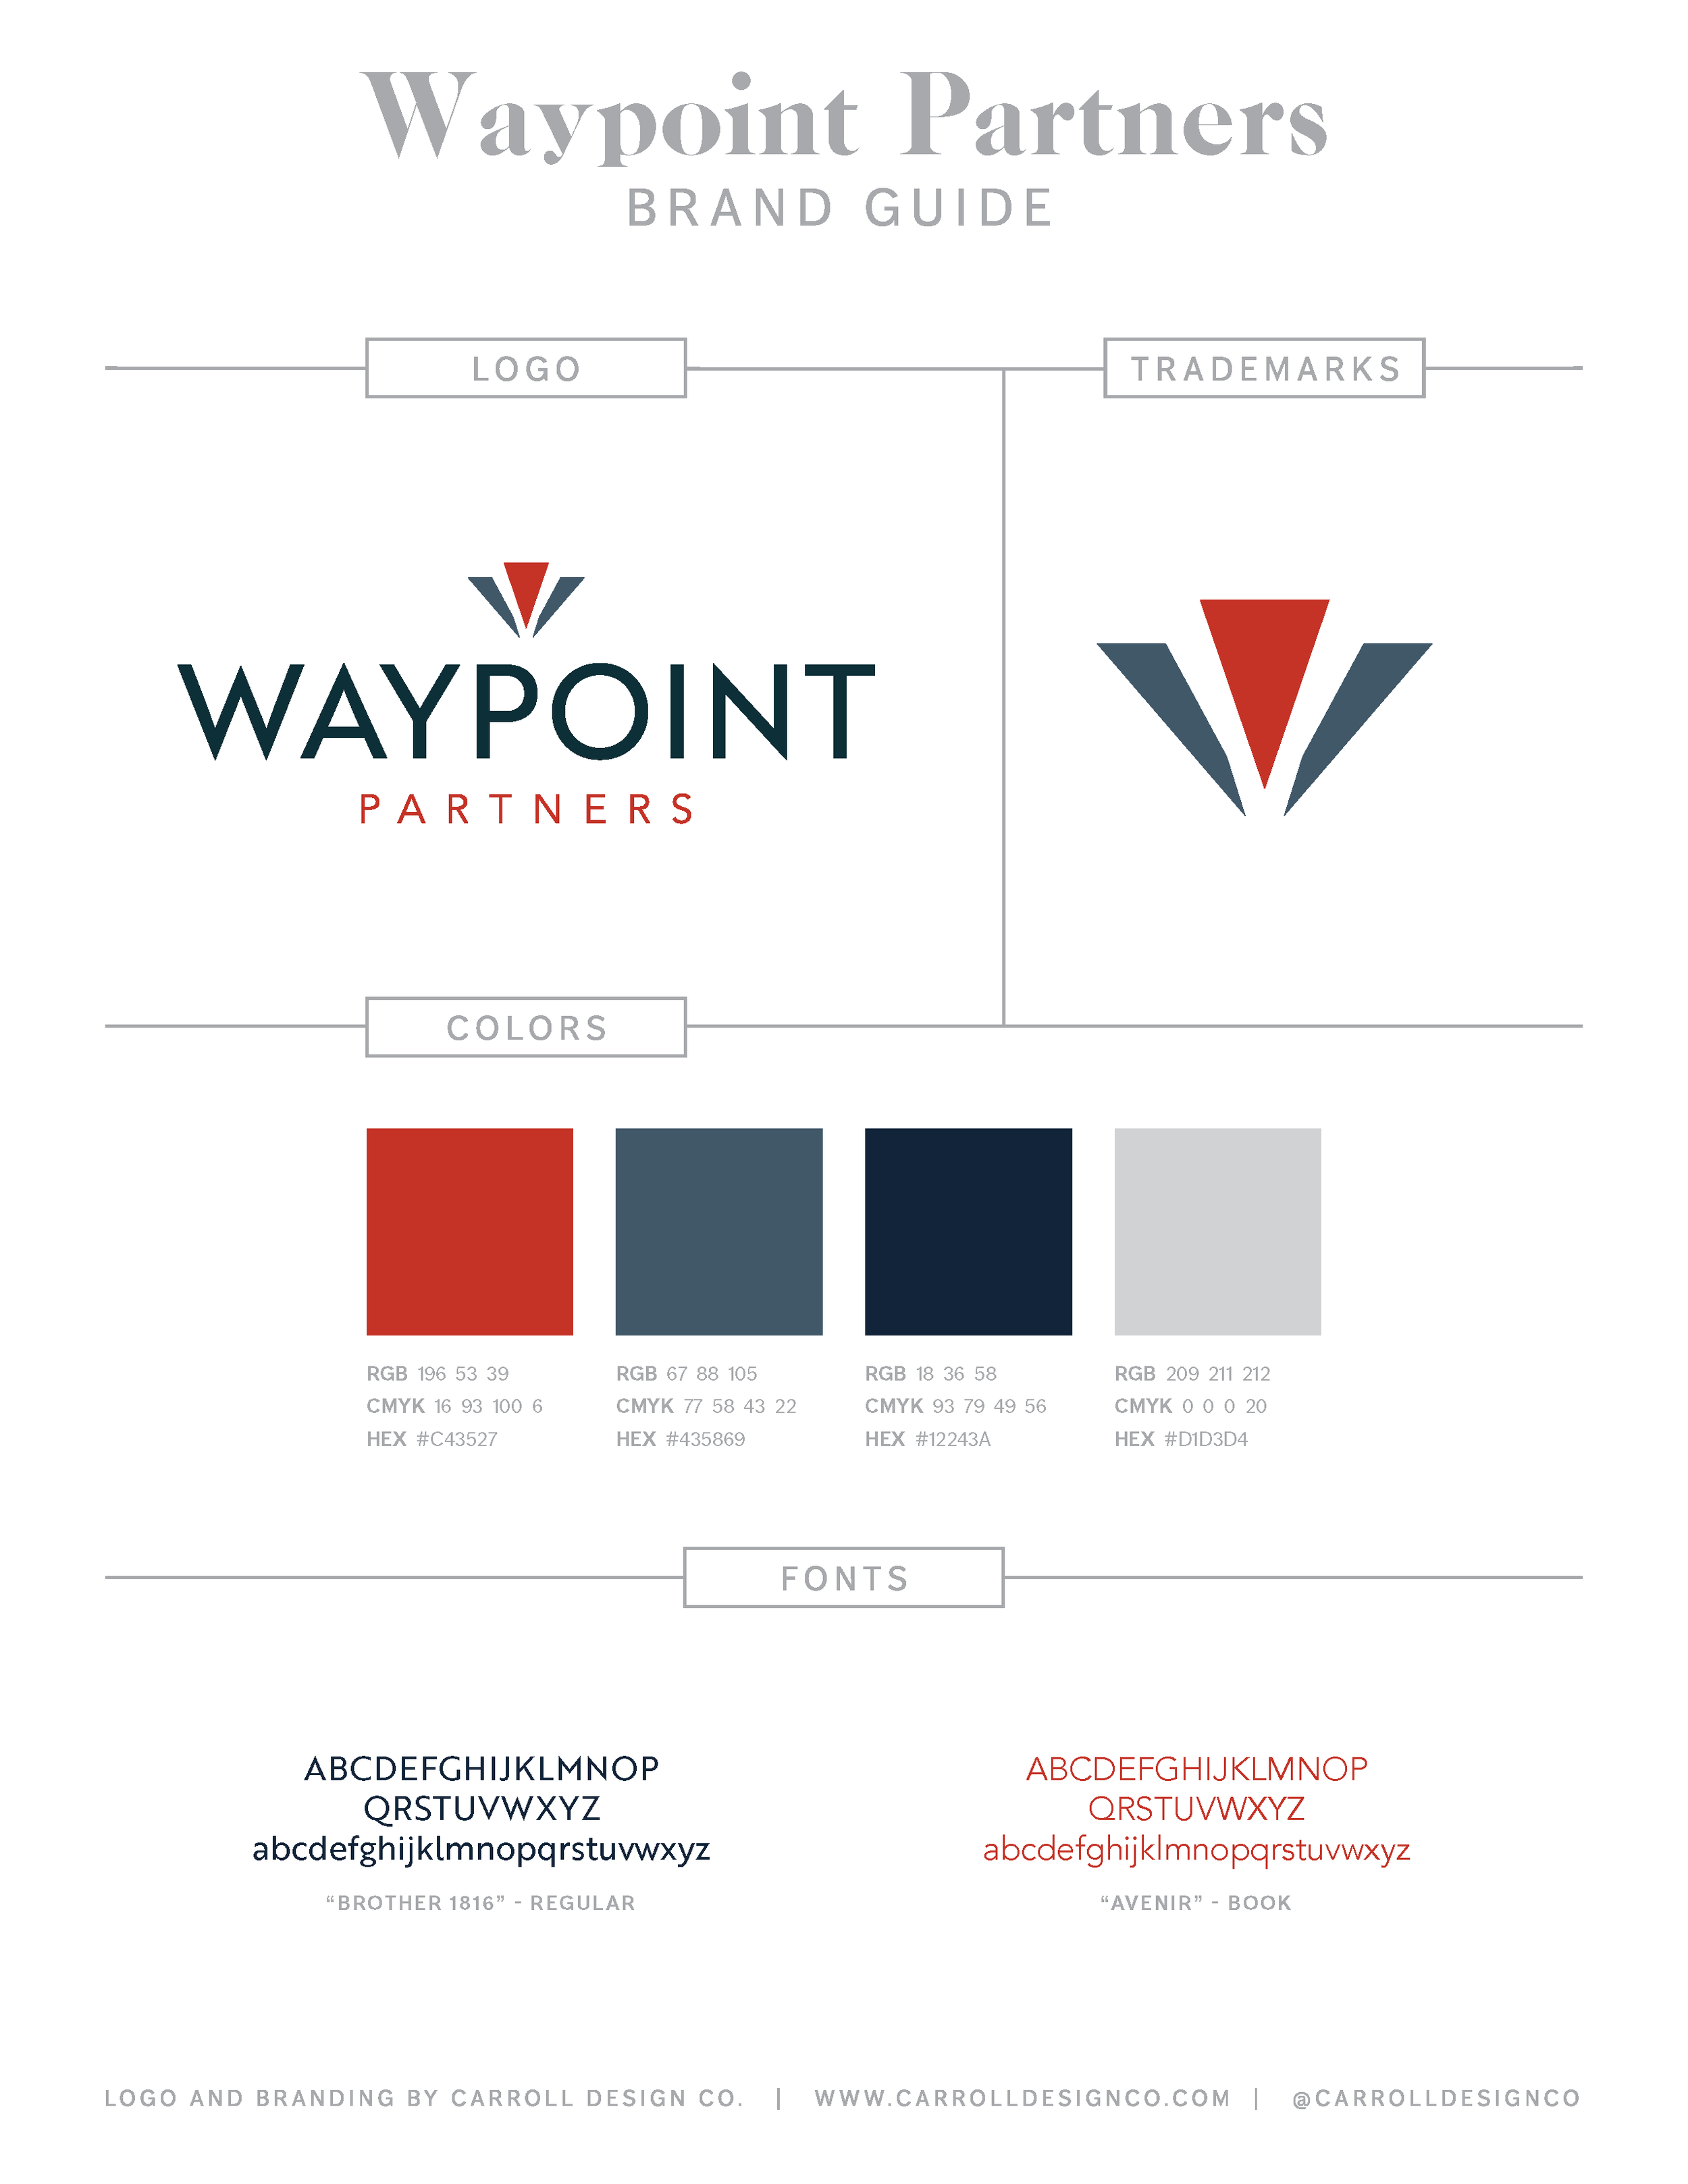 Waypoint Partners Brand Guide.png